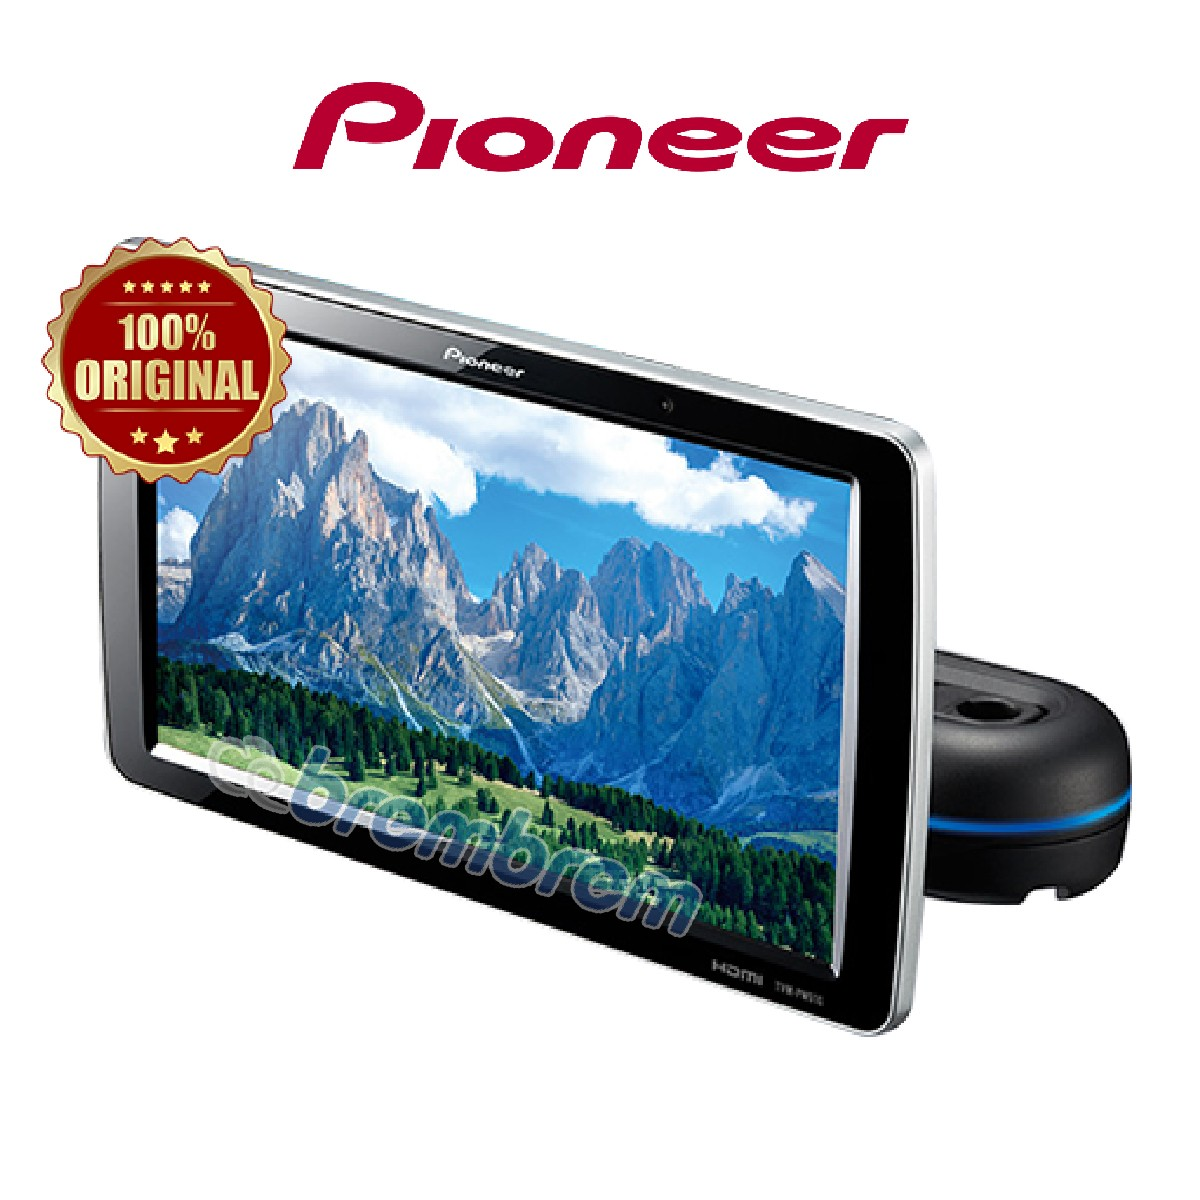 PIONEER TVM-PW910T - HEADREST MONITOR